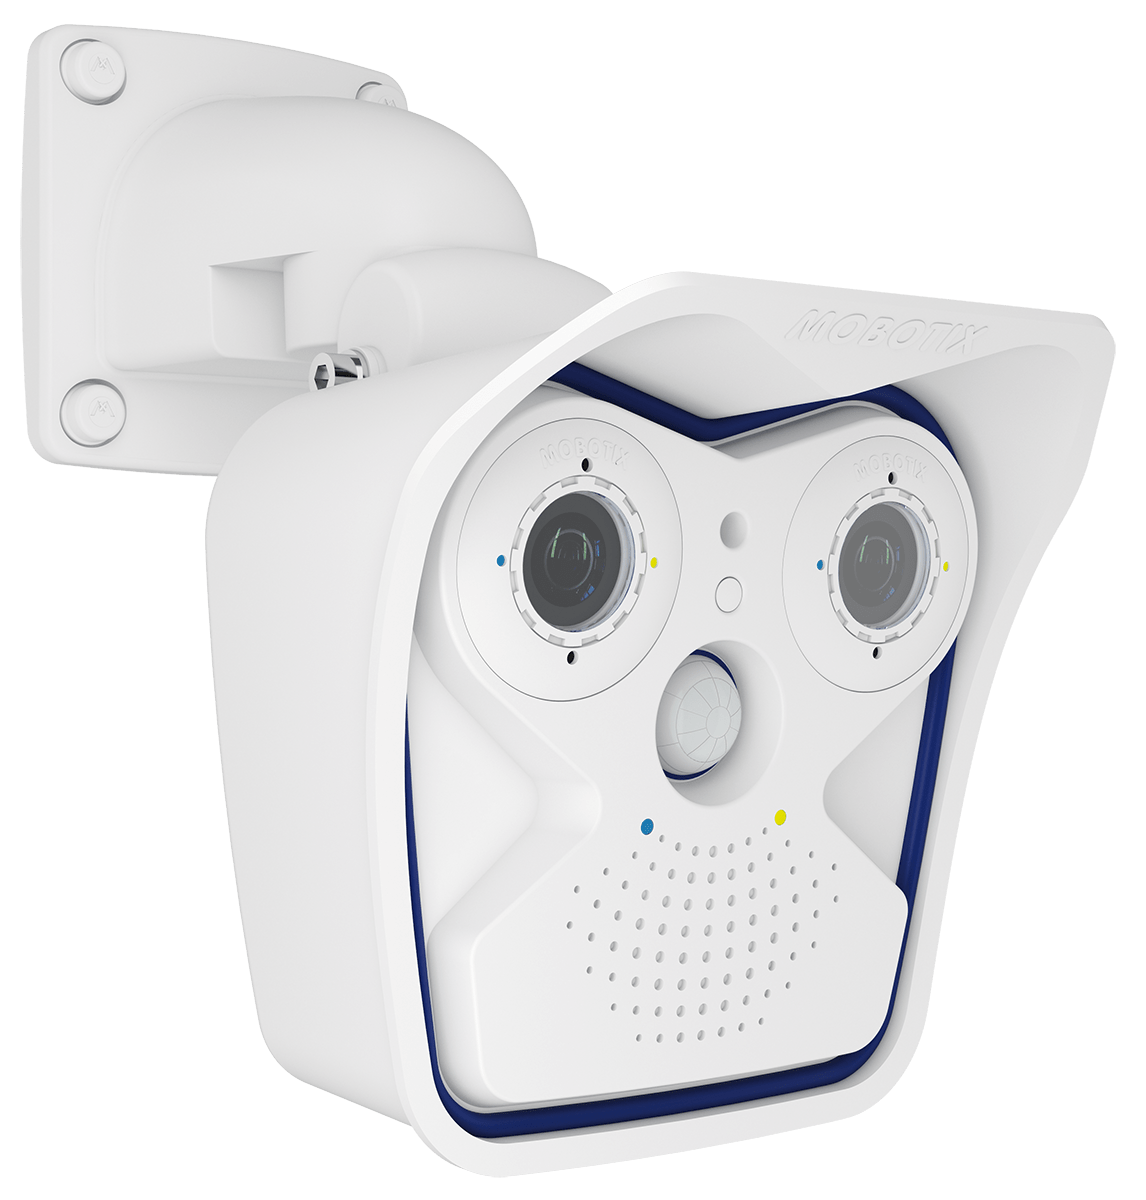 Mobotix High Resolution Camera Solutions Ecl Ips